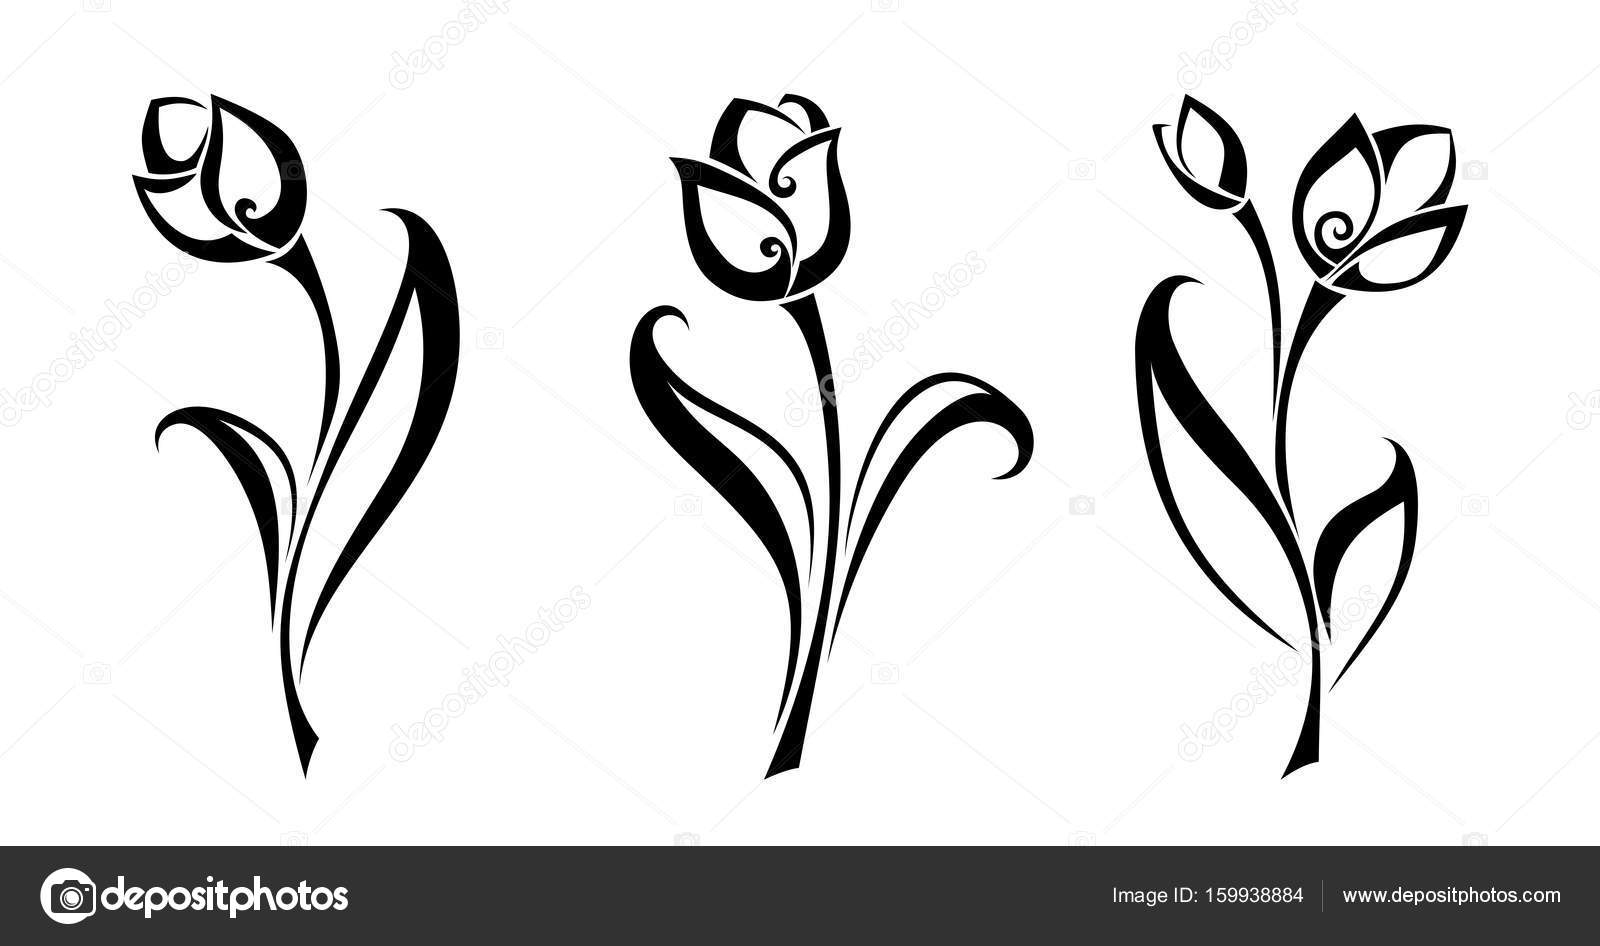 1600x946 Black Silhouettes Of Tulip Flowers. Vector Illustration. Stock